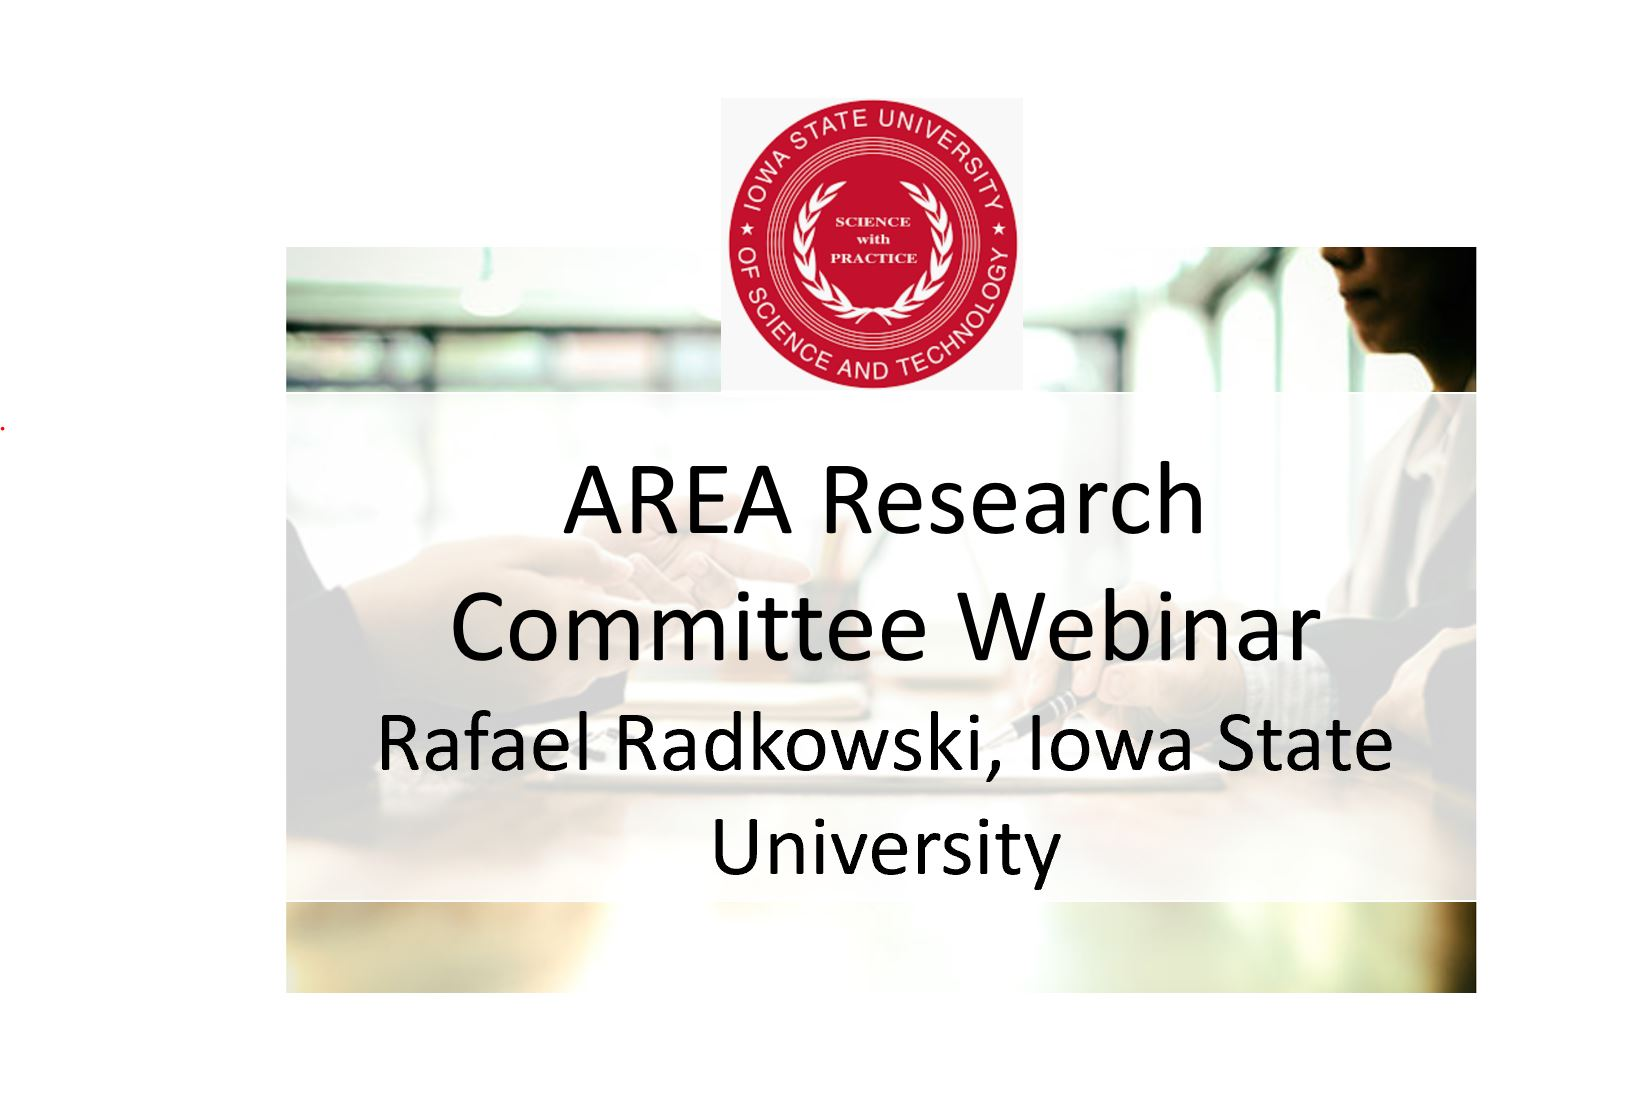 AREA Research Committee Webinar   Current AR Research Projects